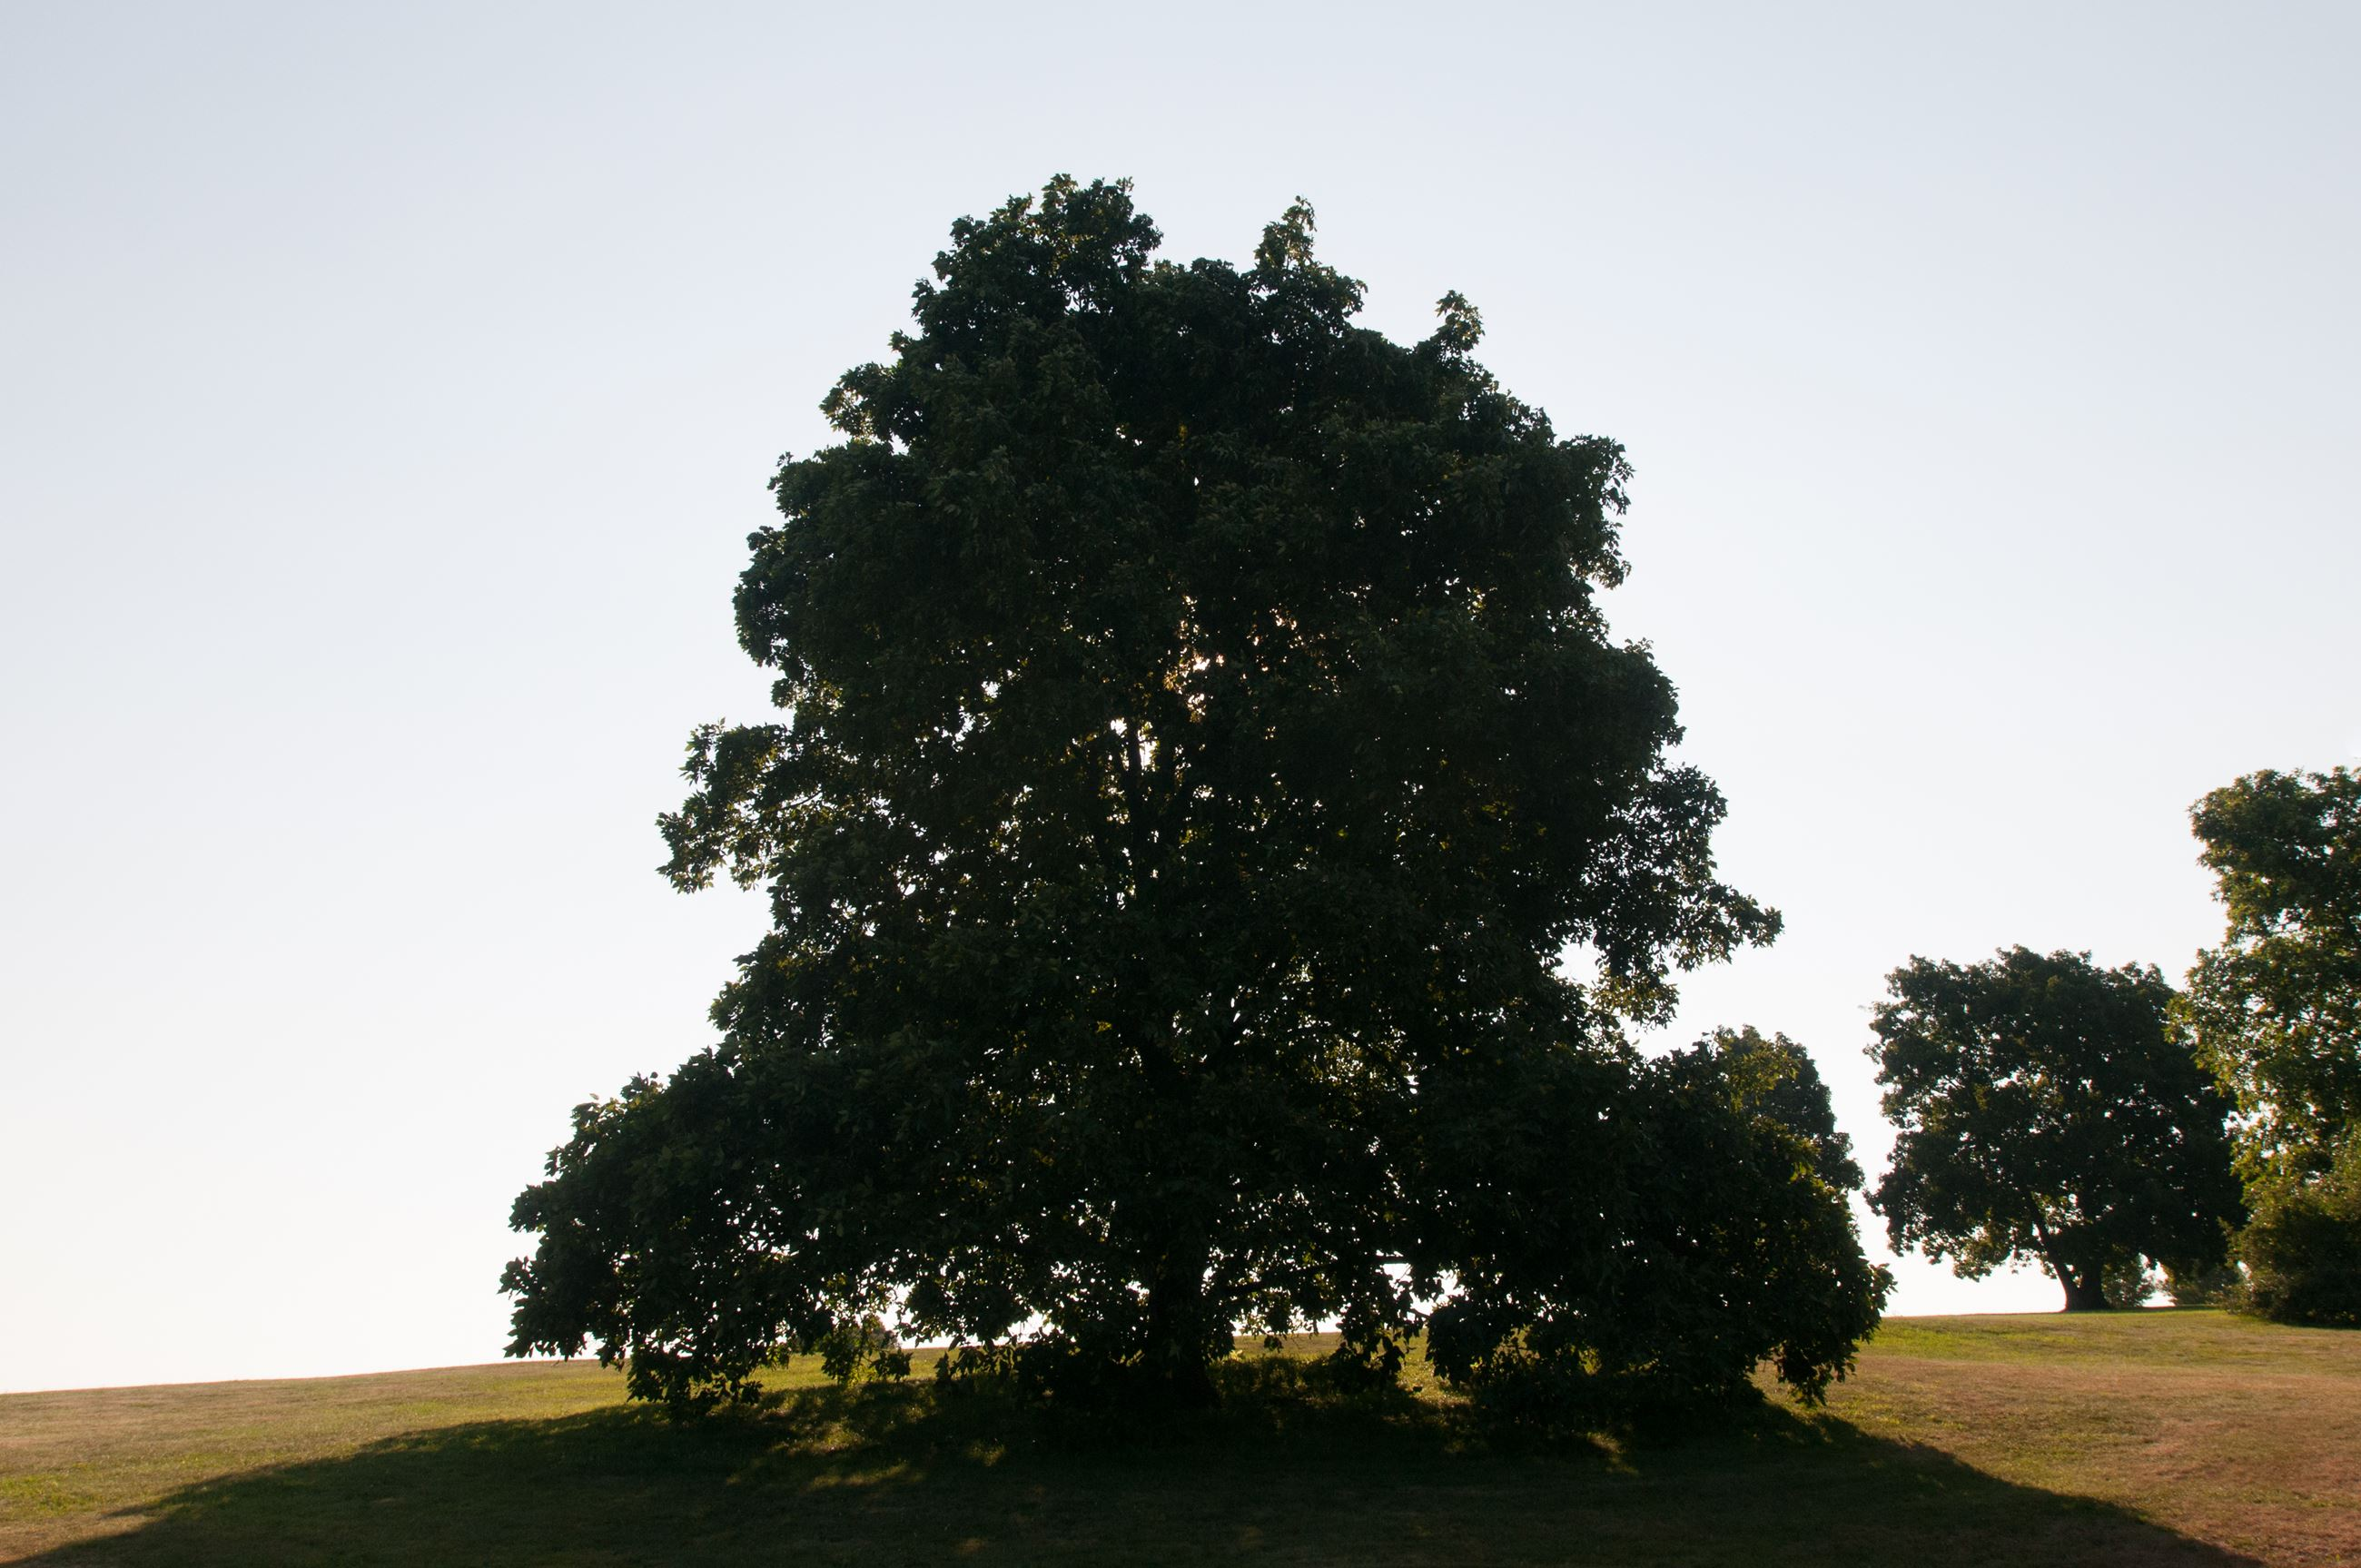 Photograph of large tree on top of hill with a clear, cloudless sky behind it